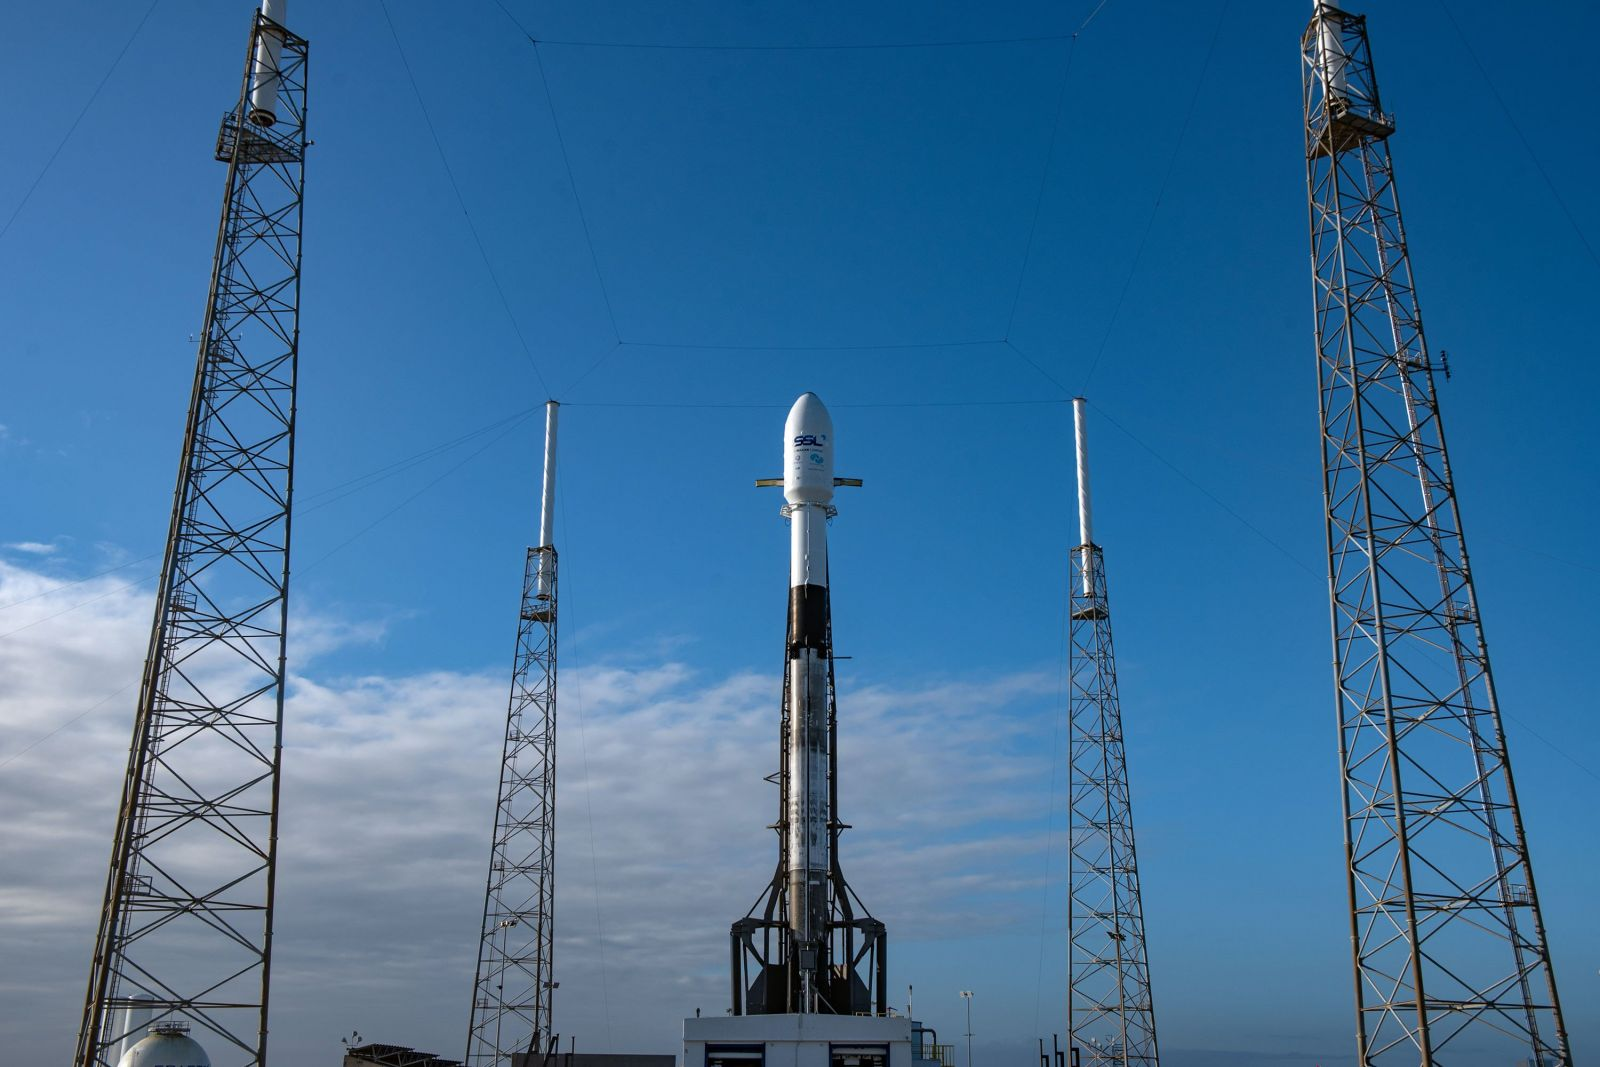 SpaceX's Falcon 9 with the PSN 6 satellite and Israeli Beresheet lunar lander encapsulated inside stands at Space Launch Complex 40 in Cape Canaveral, Florida. Photo Credit: SpaceX